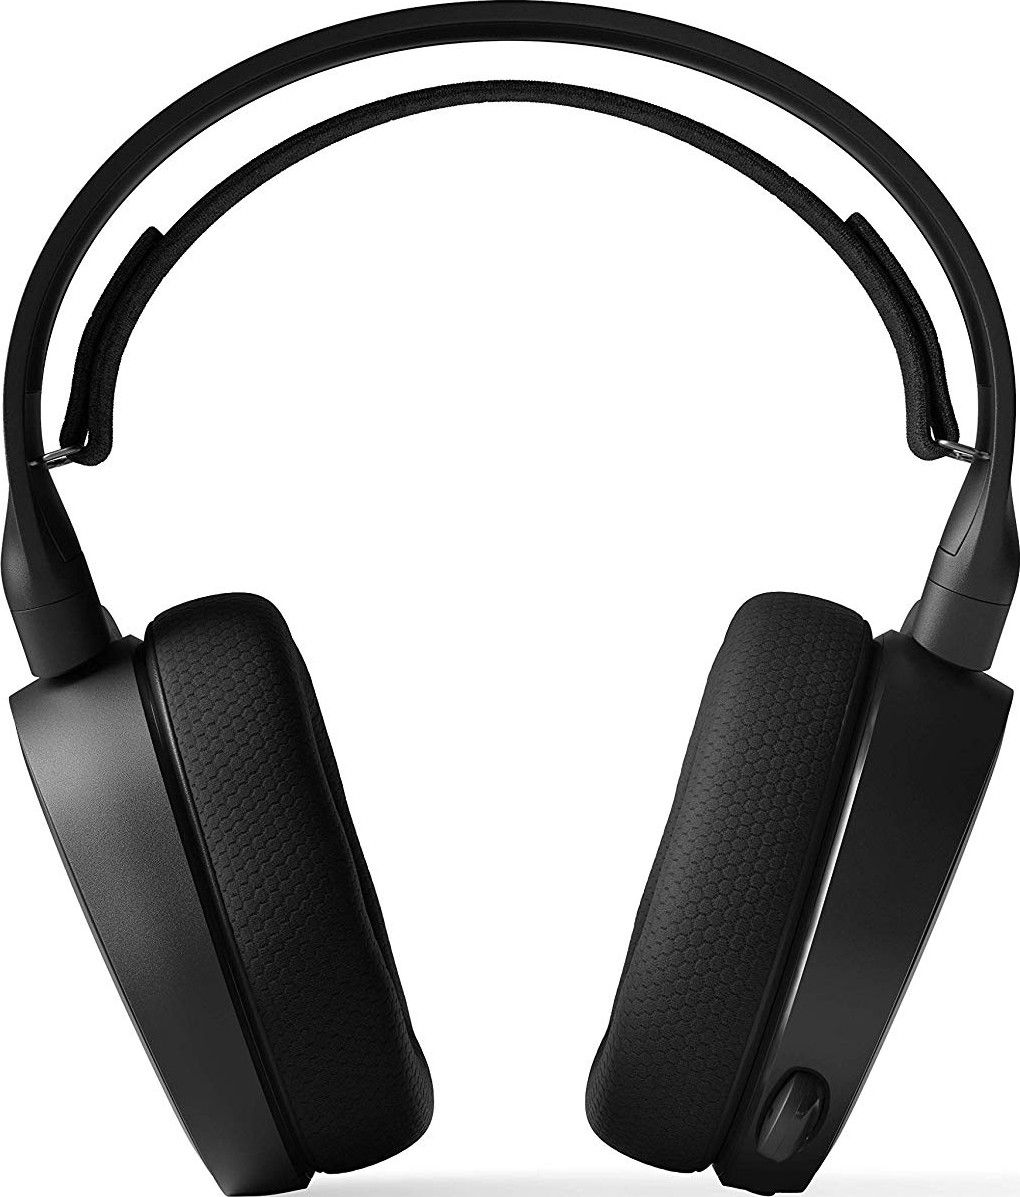 Гейминг слушалки Steelseries ARCTIS 3, 2019 Edition - черни - 3